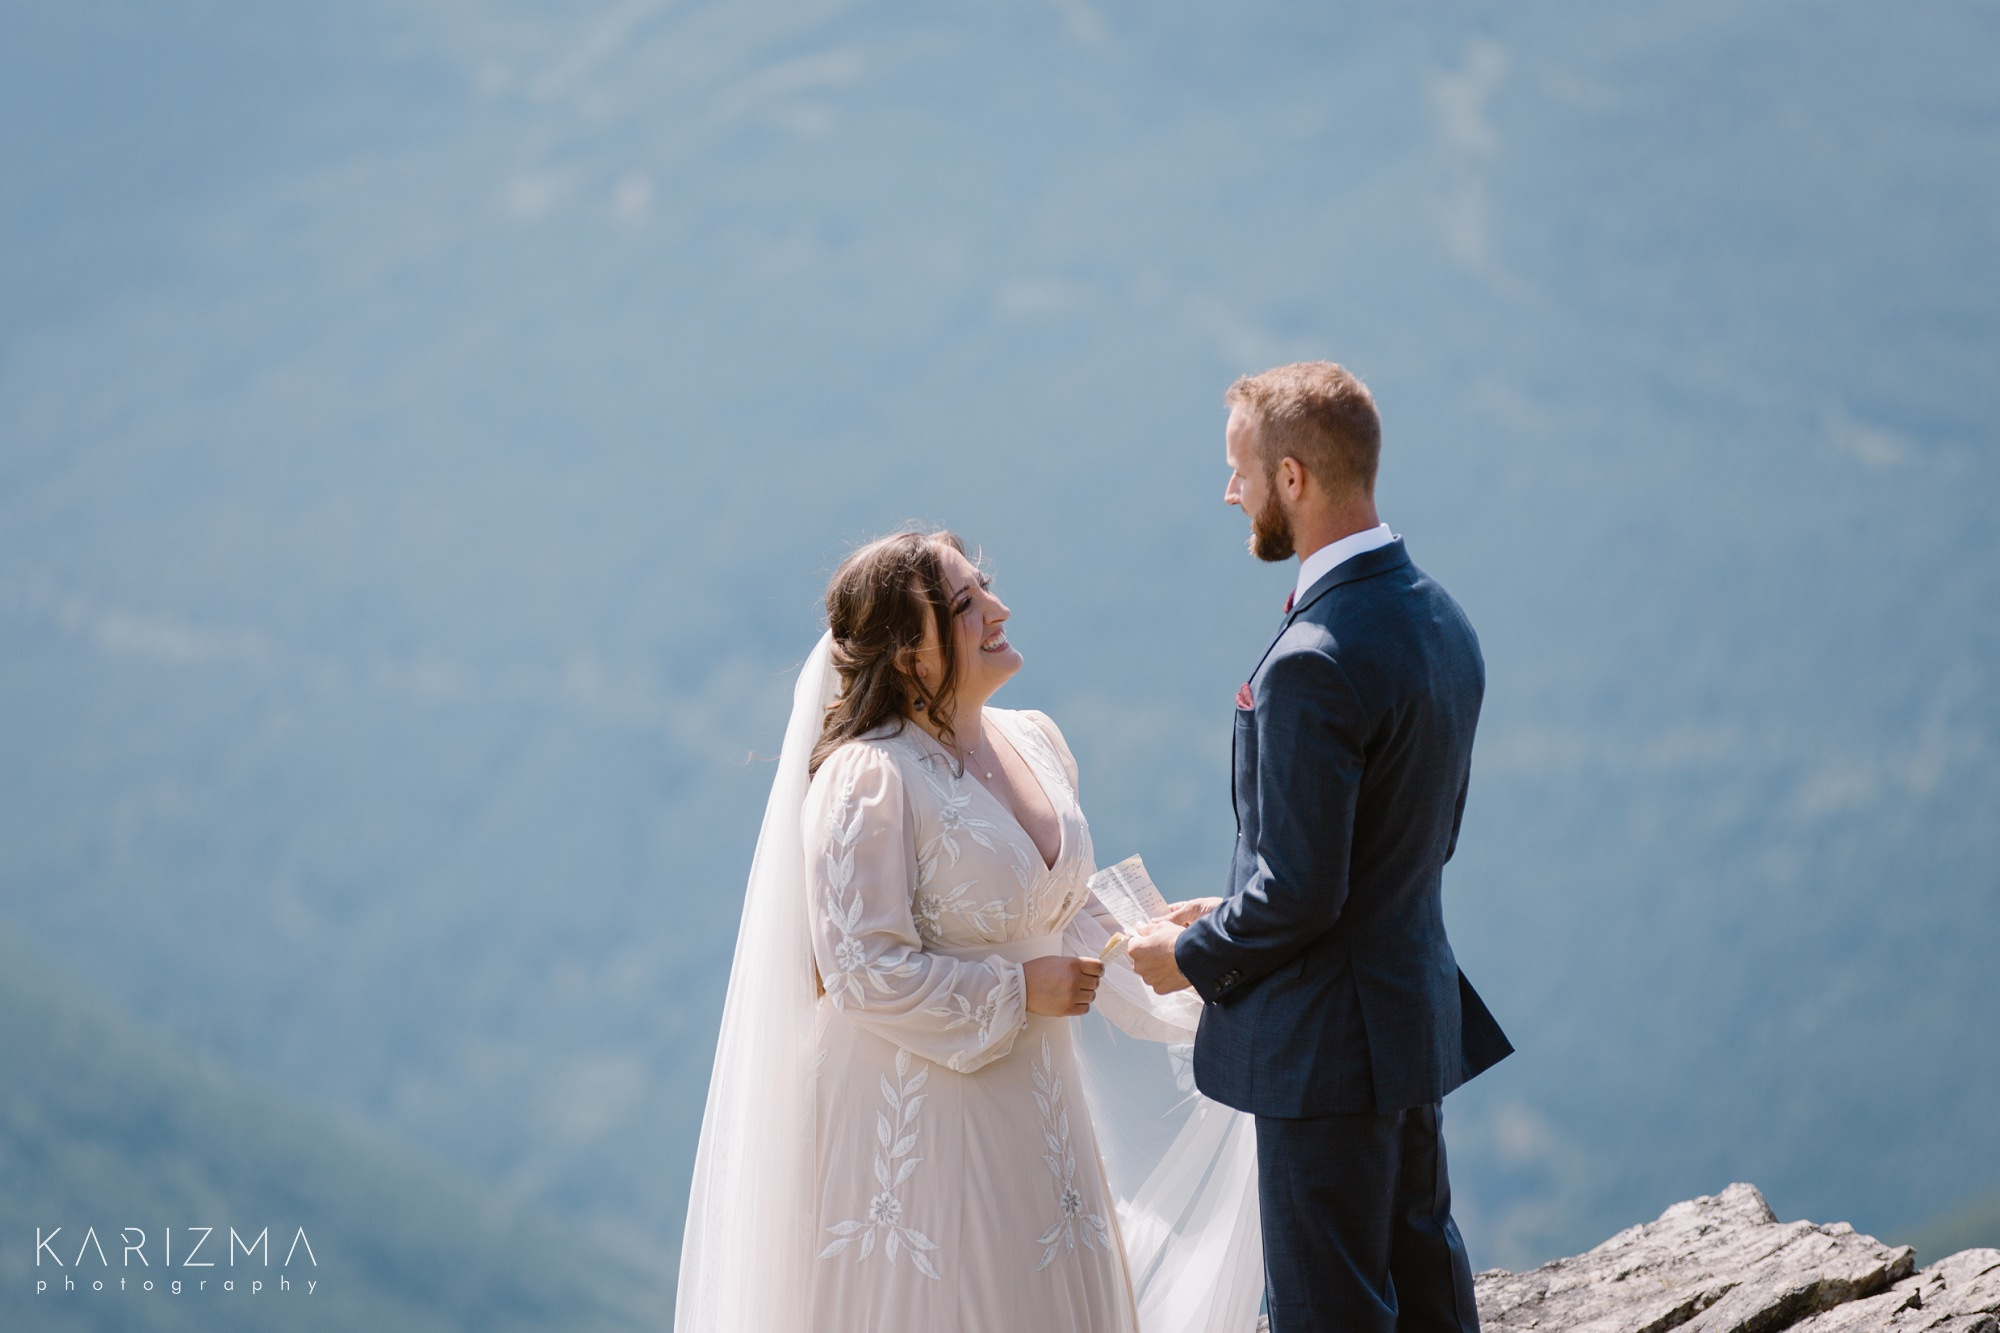 Reading vows at the top of the mountain